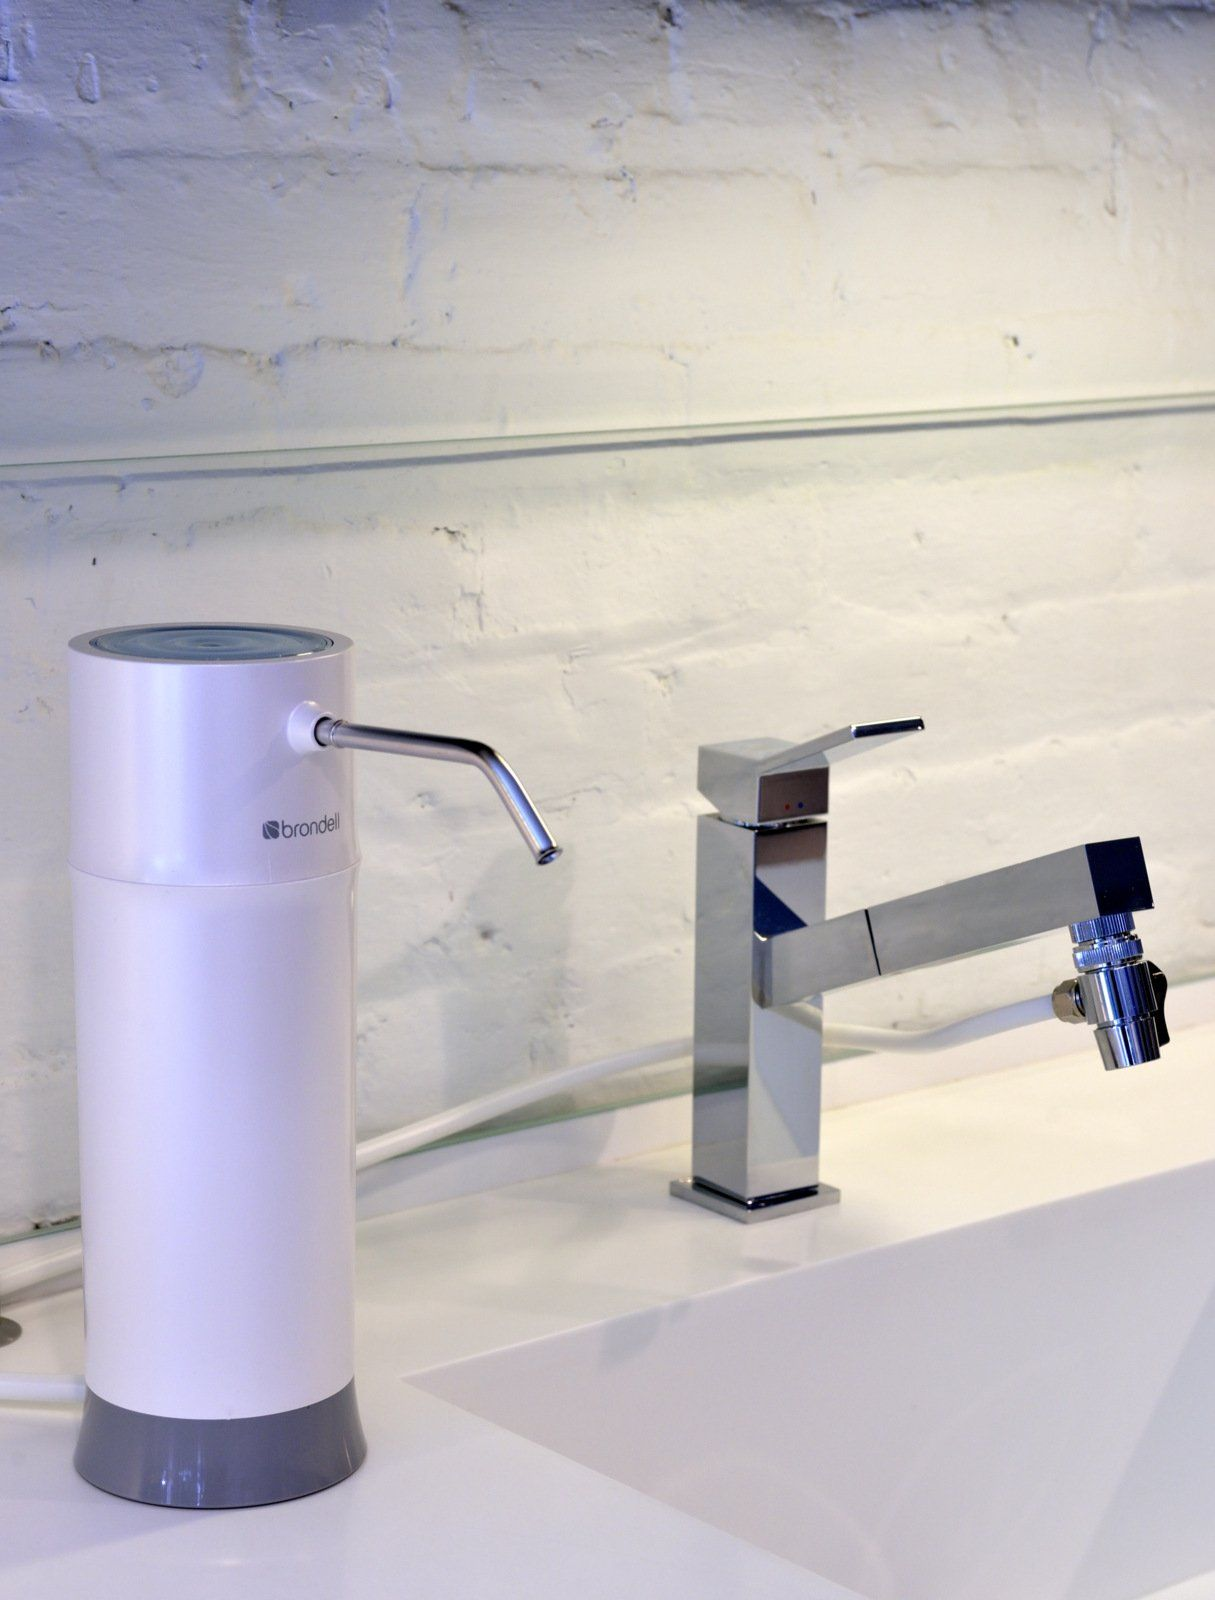 Brondell H2O+ Pearl Countertop Water Filter System. WQA